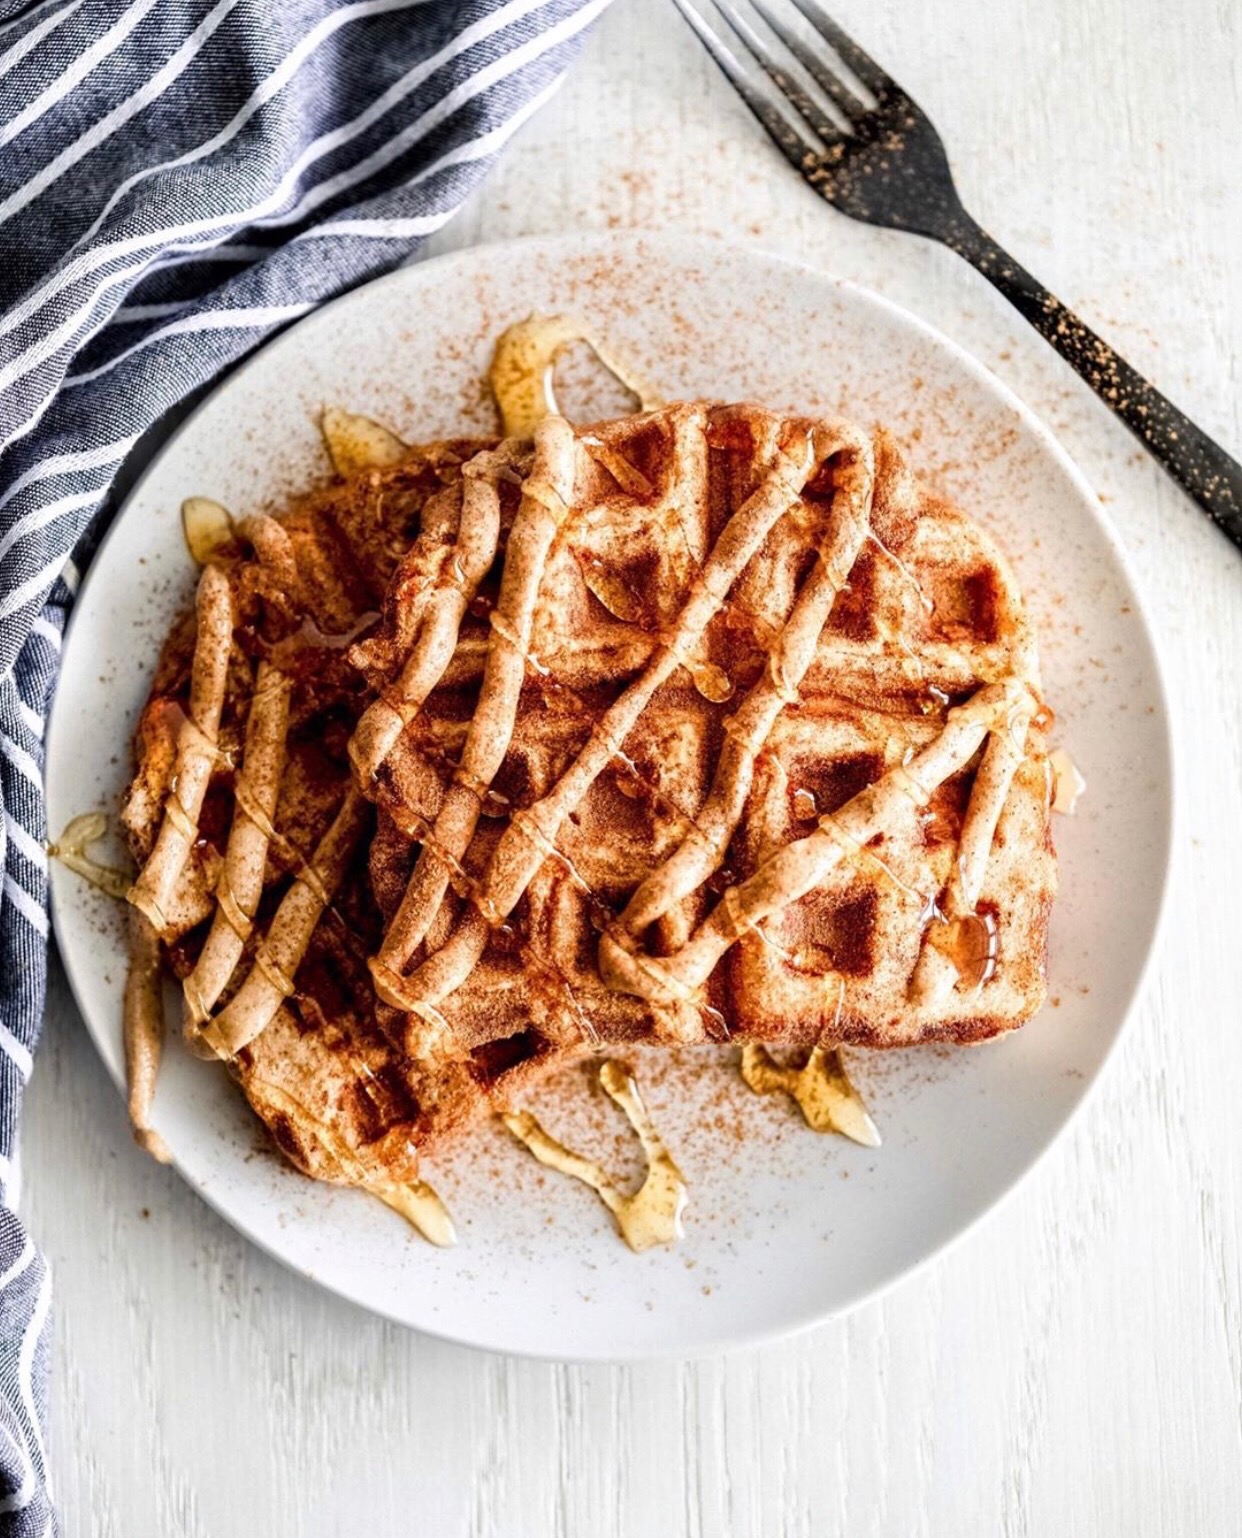 Cinnamon Waffled French Toast Crunch - Makes 1 serving340 calories7F / 45C / 21P